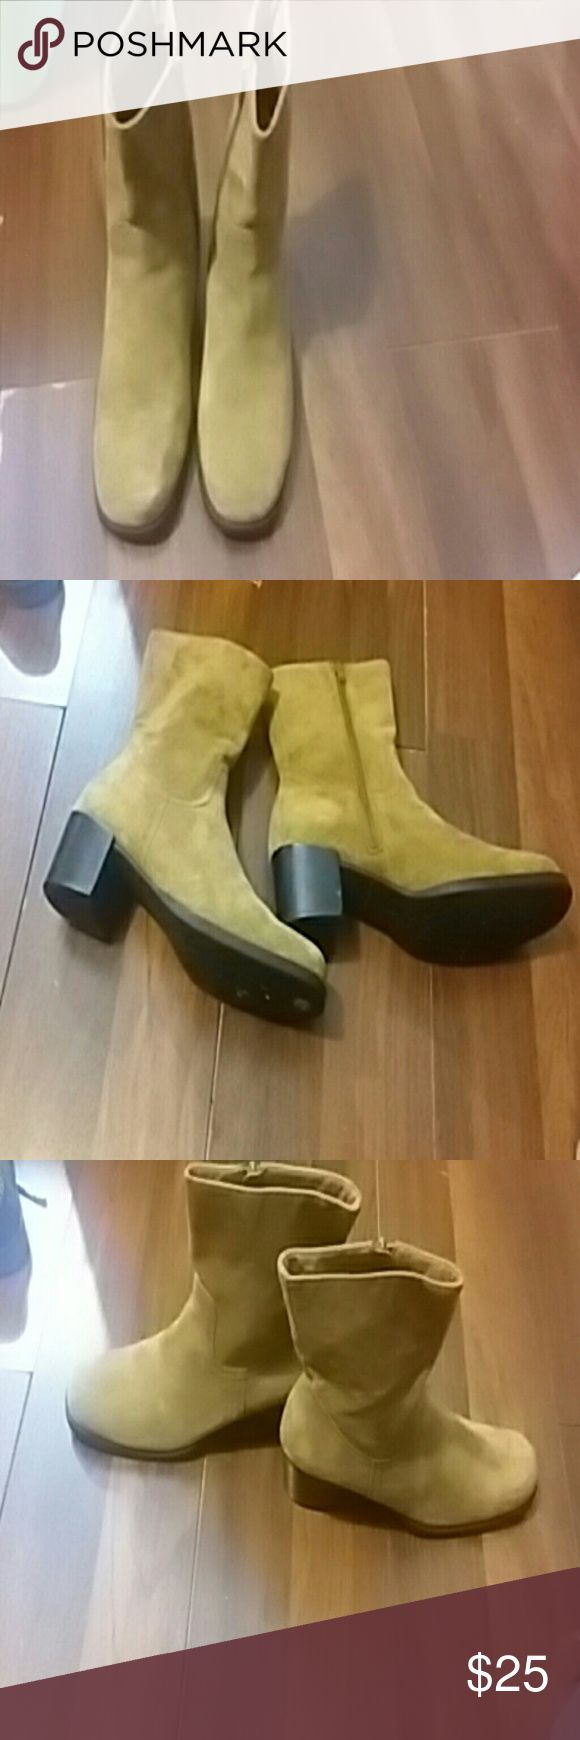 Ankle  boots Nice very very comfortable  suede  nice heel get up and go boot. Dress up or dress down Hush Puppies Shoes Ankle Boots & Booties